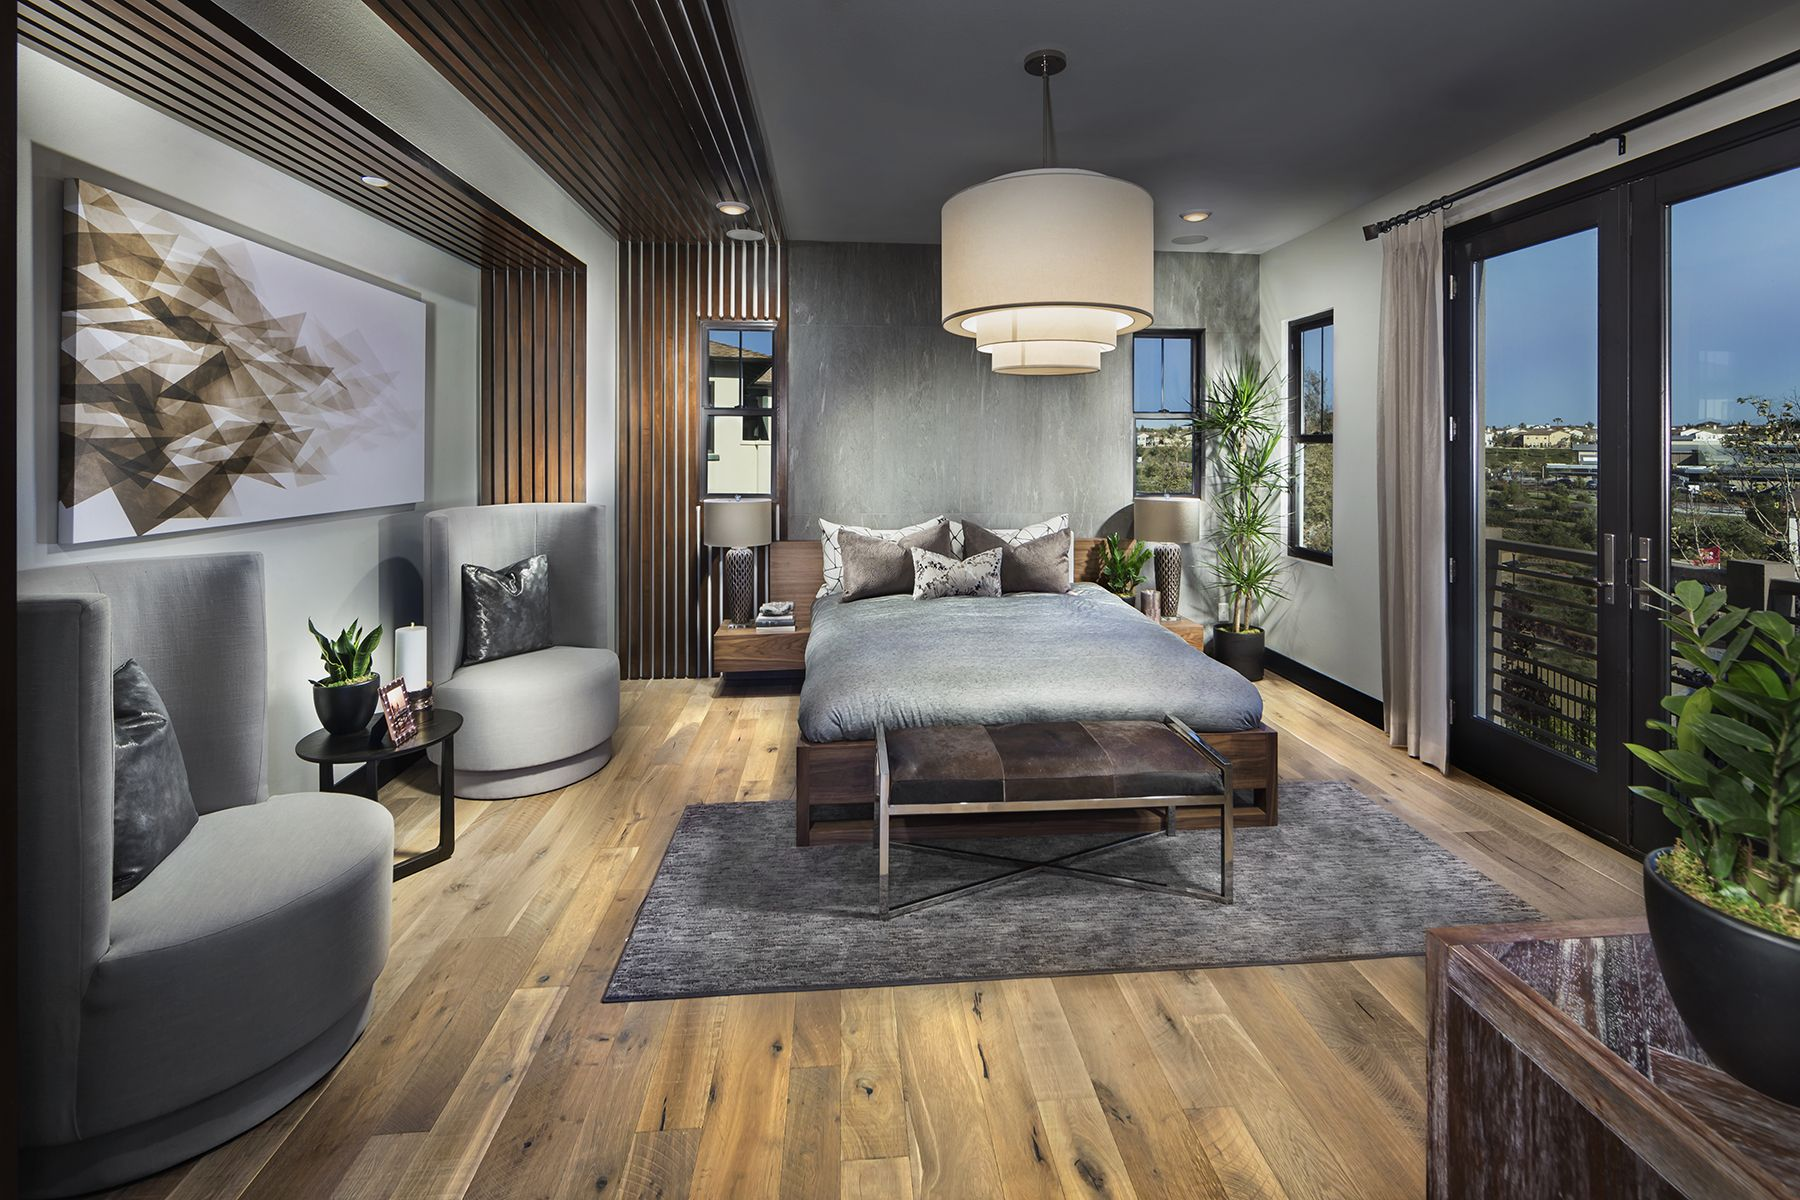 Olvera, in collaboration with Pardee Homes 2017 ICON